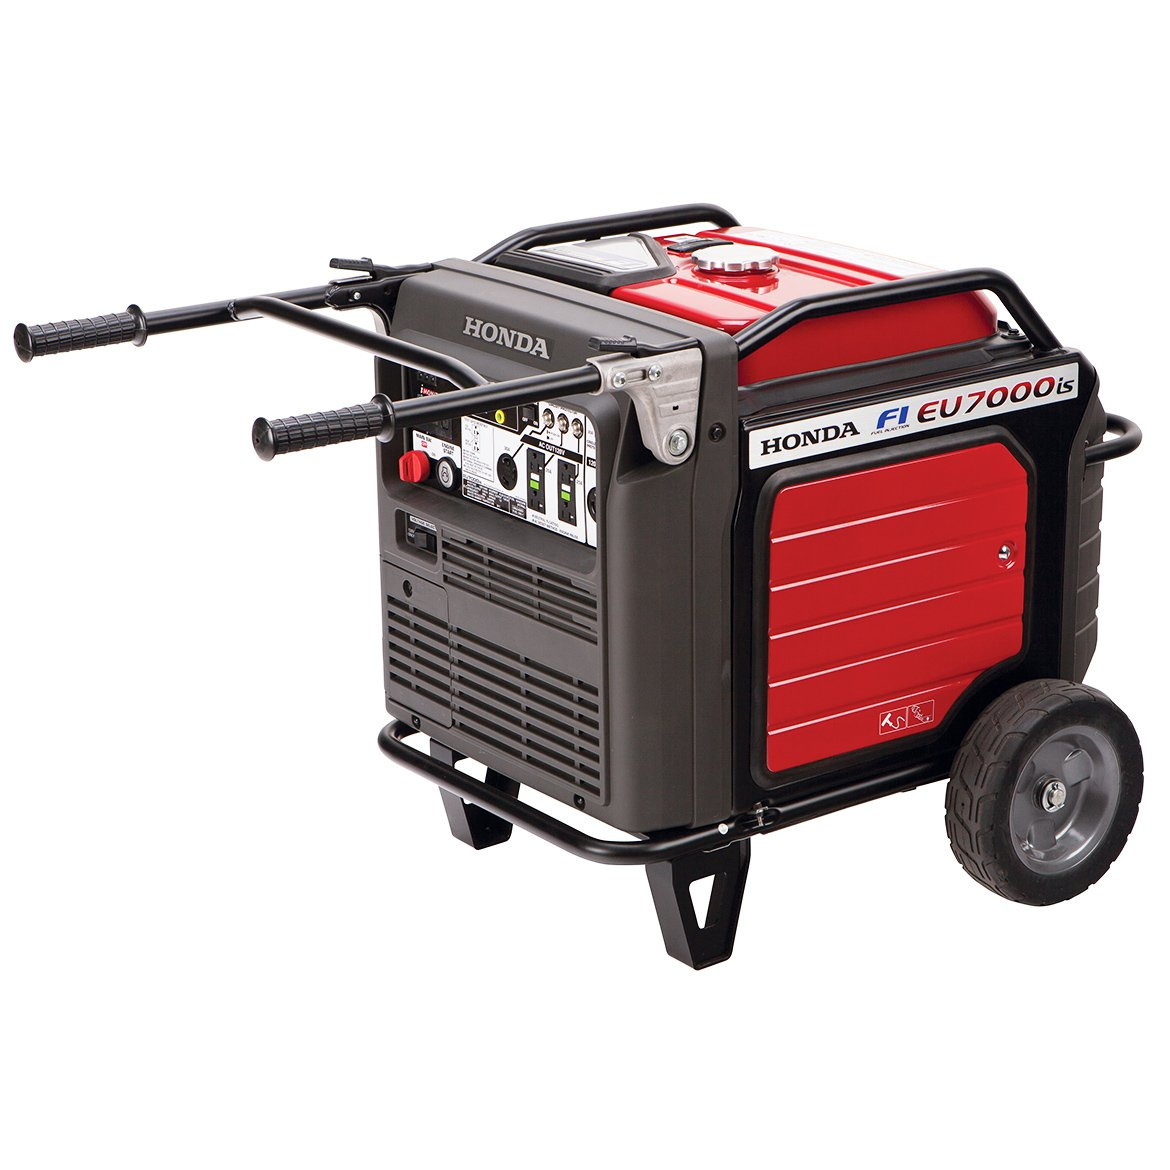 Honda Super Quiet Portable Inverter Generator with Electric Start